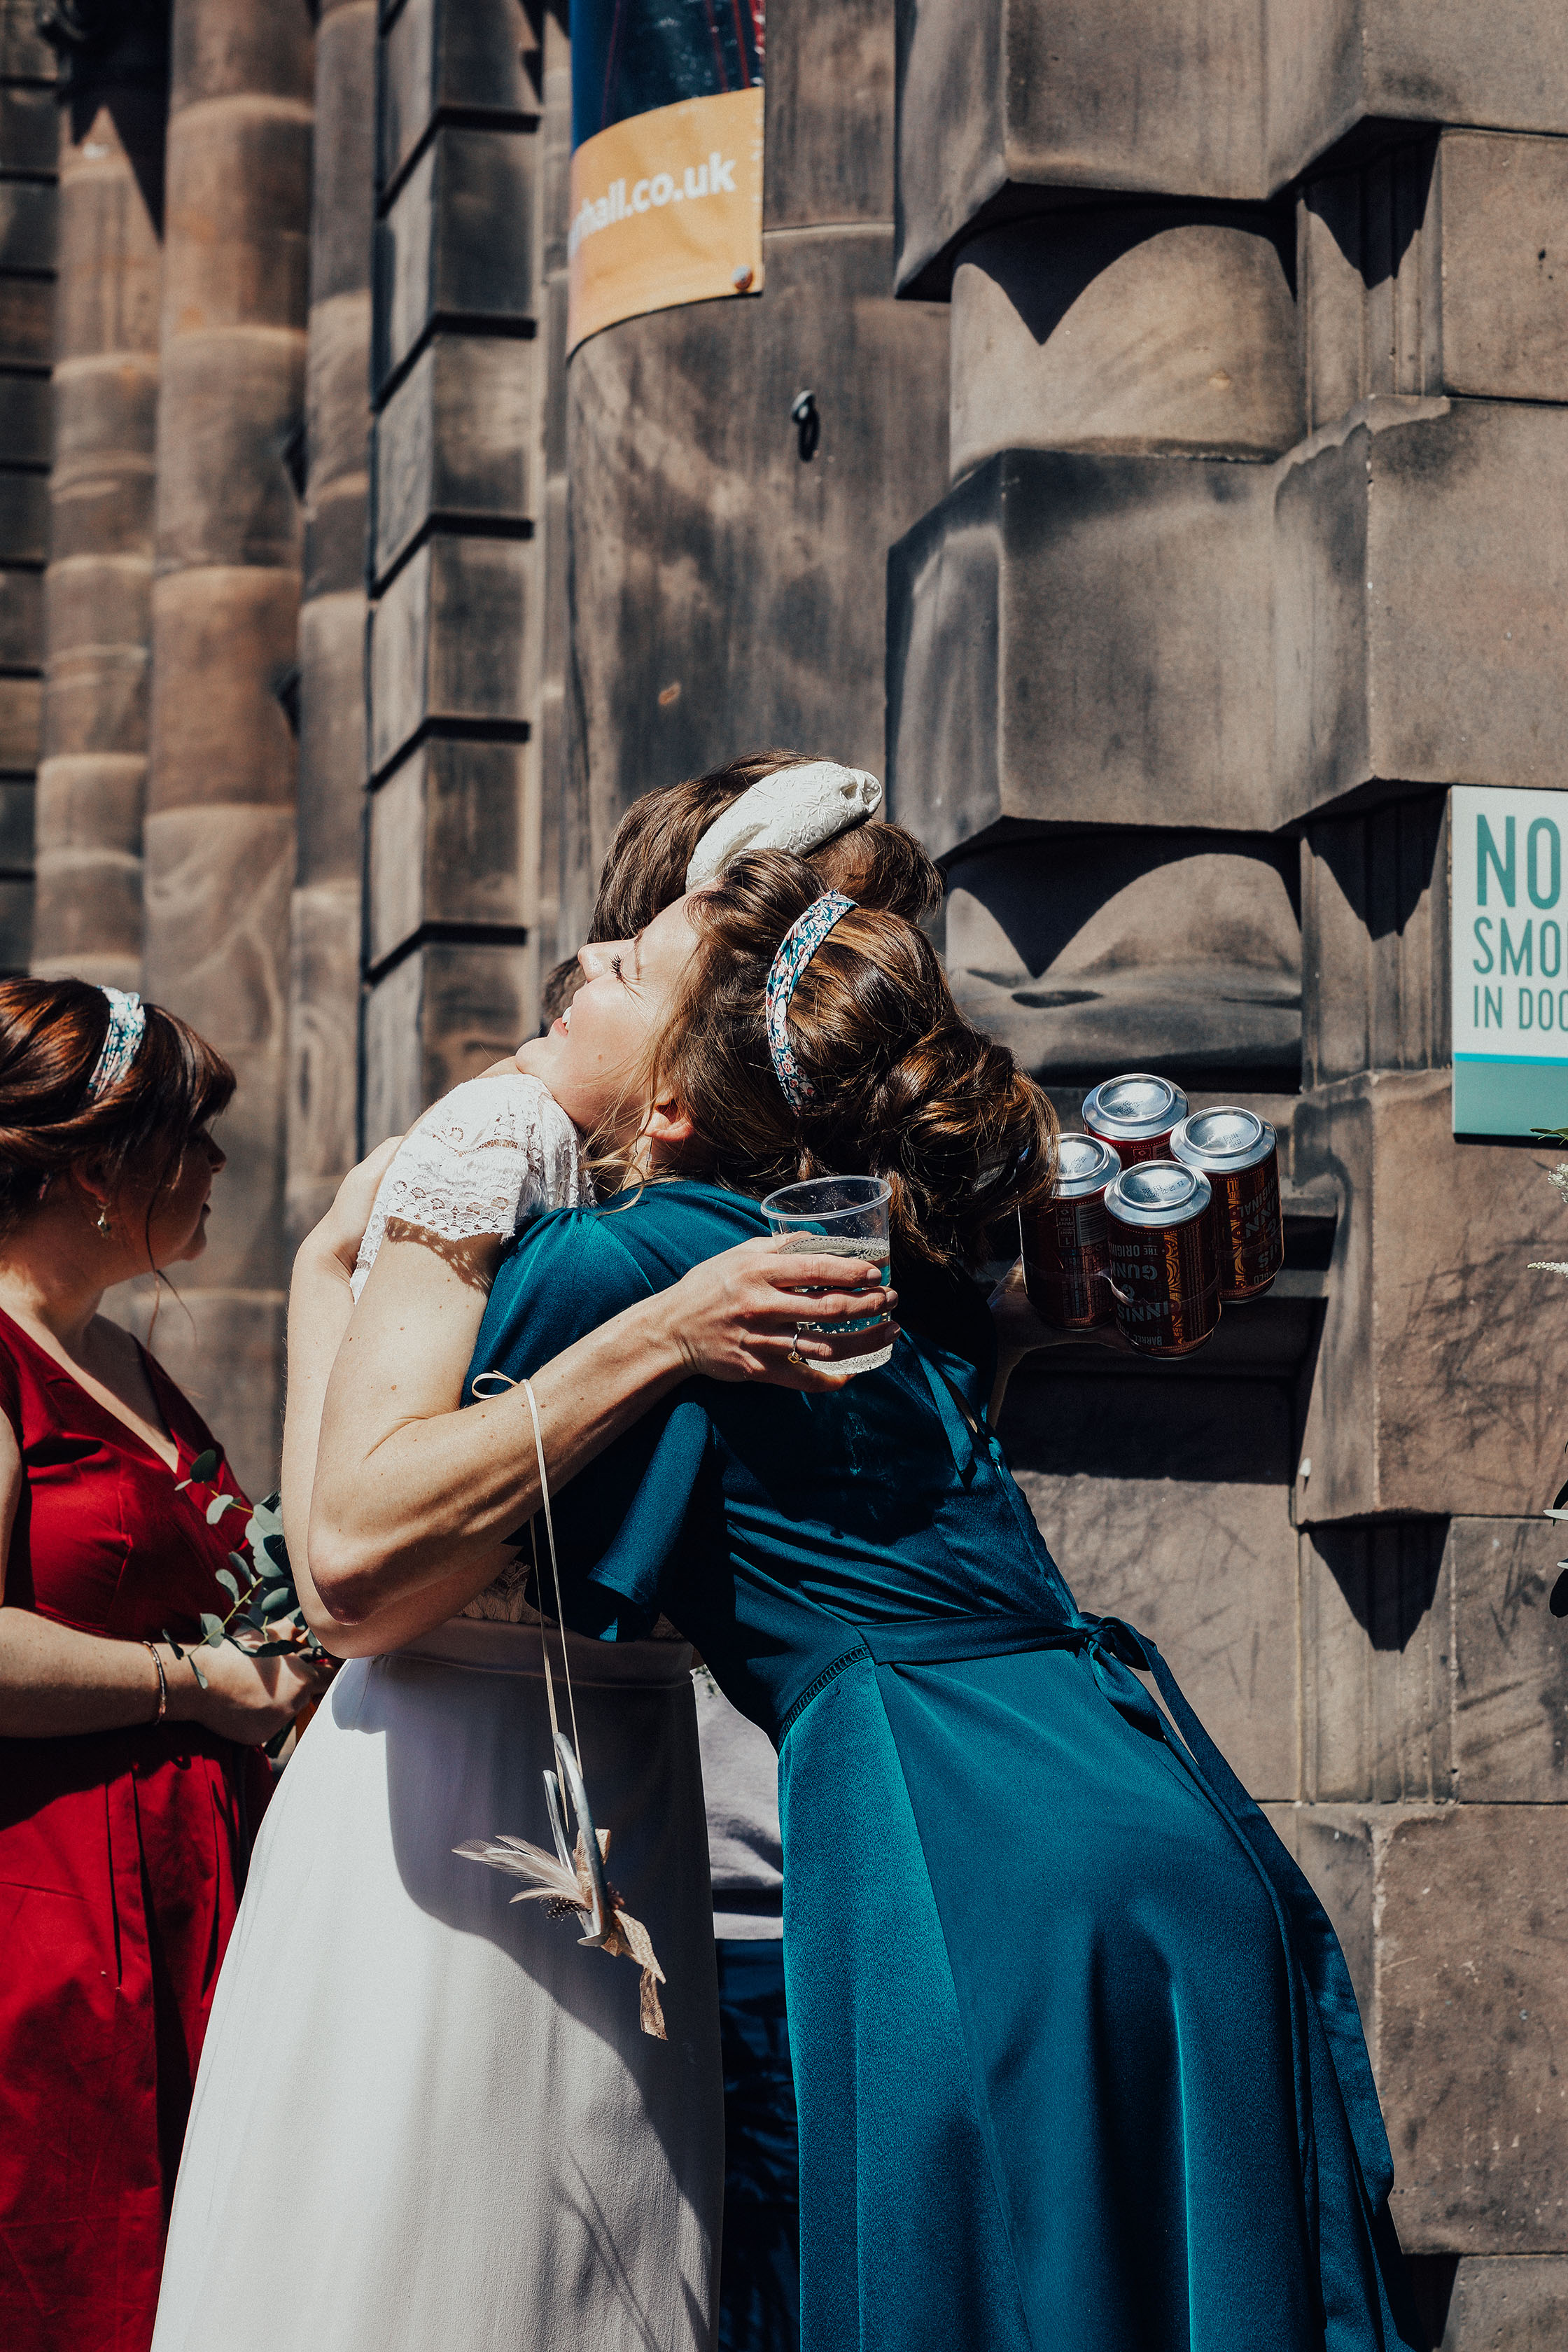 TIMBERYARD_EDINBURGH_WEDDING_PJ_PHILLIPS_PHOTOGRAPHY_108.jpg